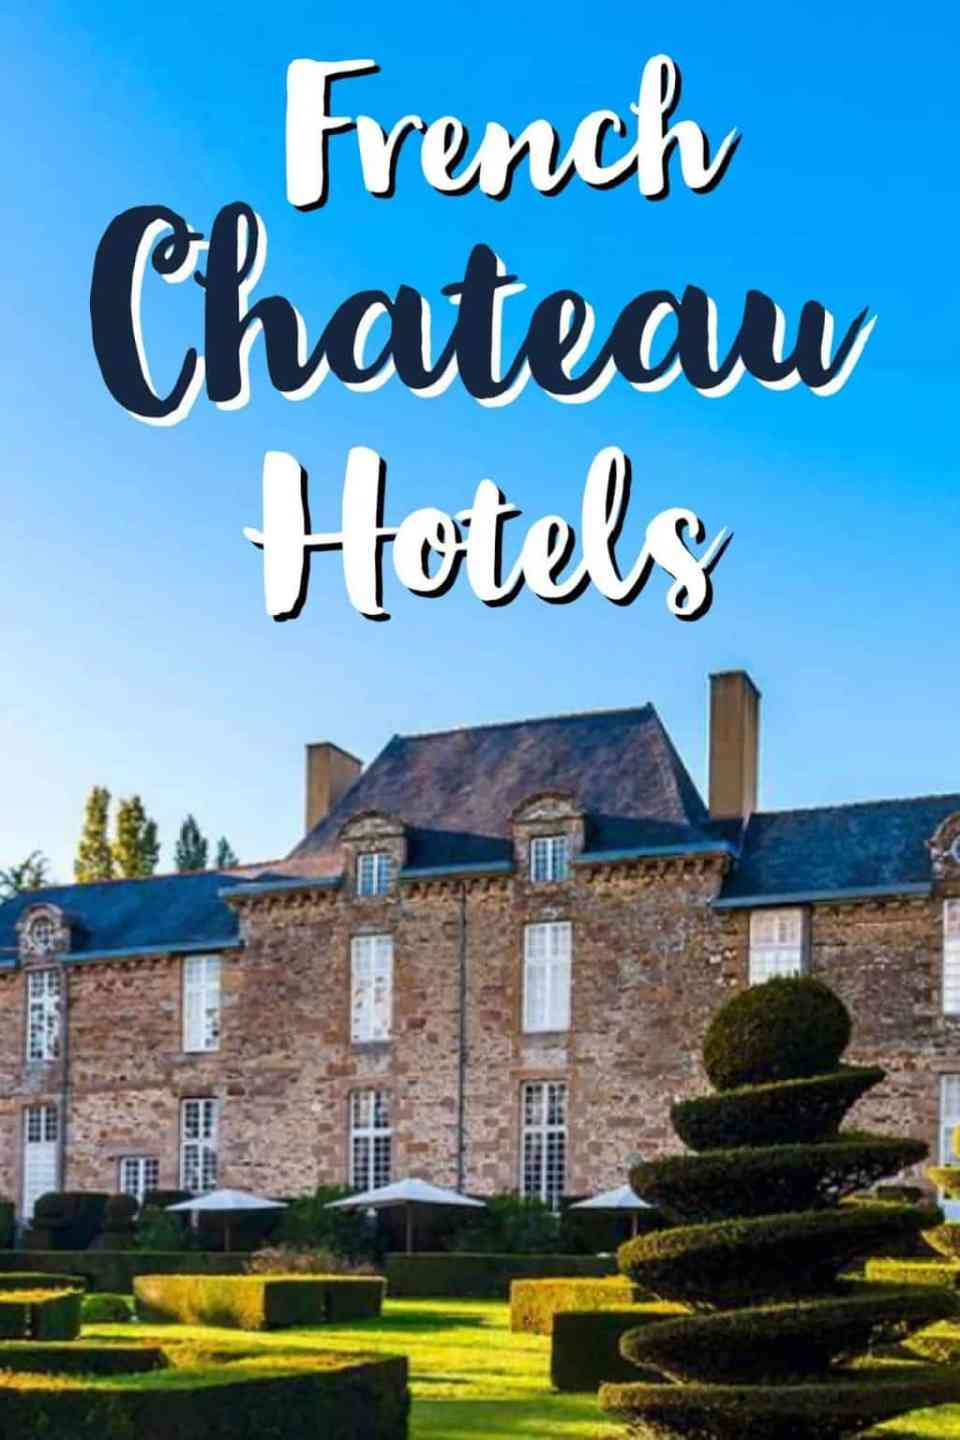 Looking for a castle hotel in France? Check out this stunning but affordable French Chateau hotels for your next France holiday.